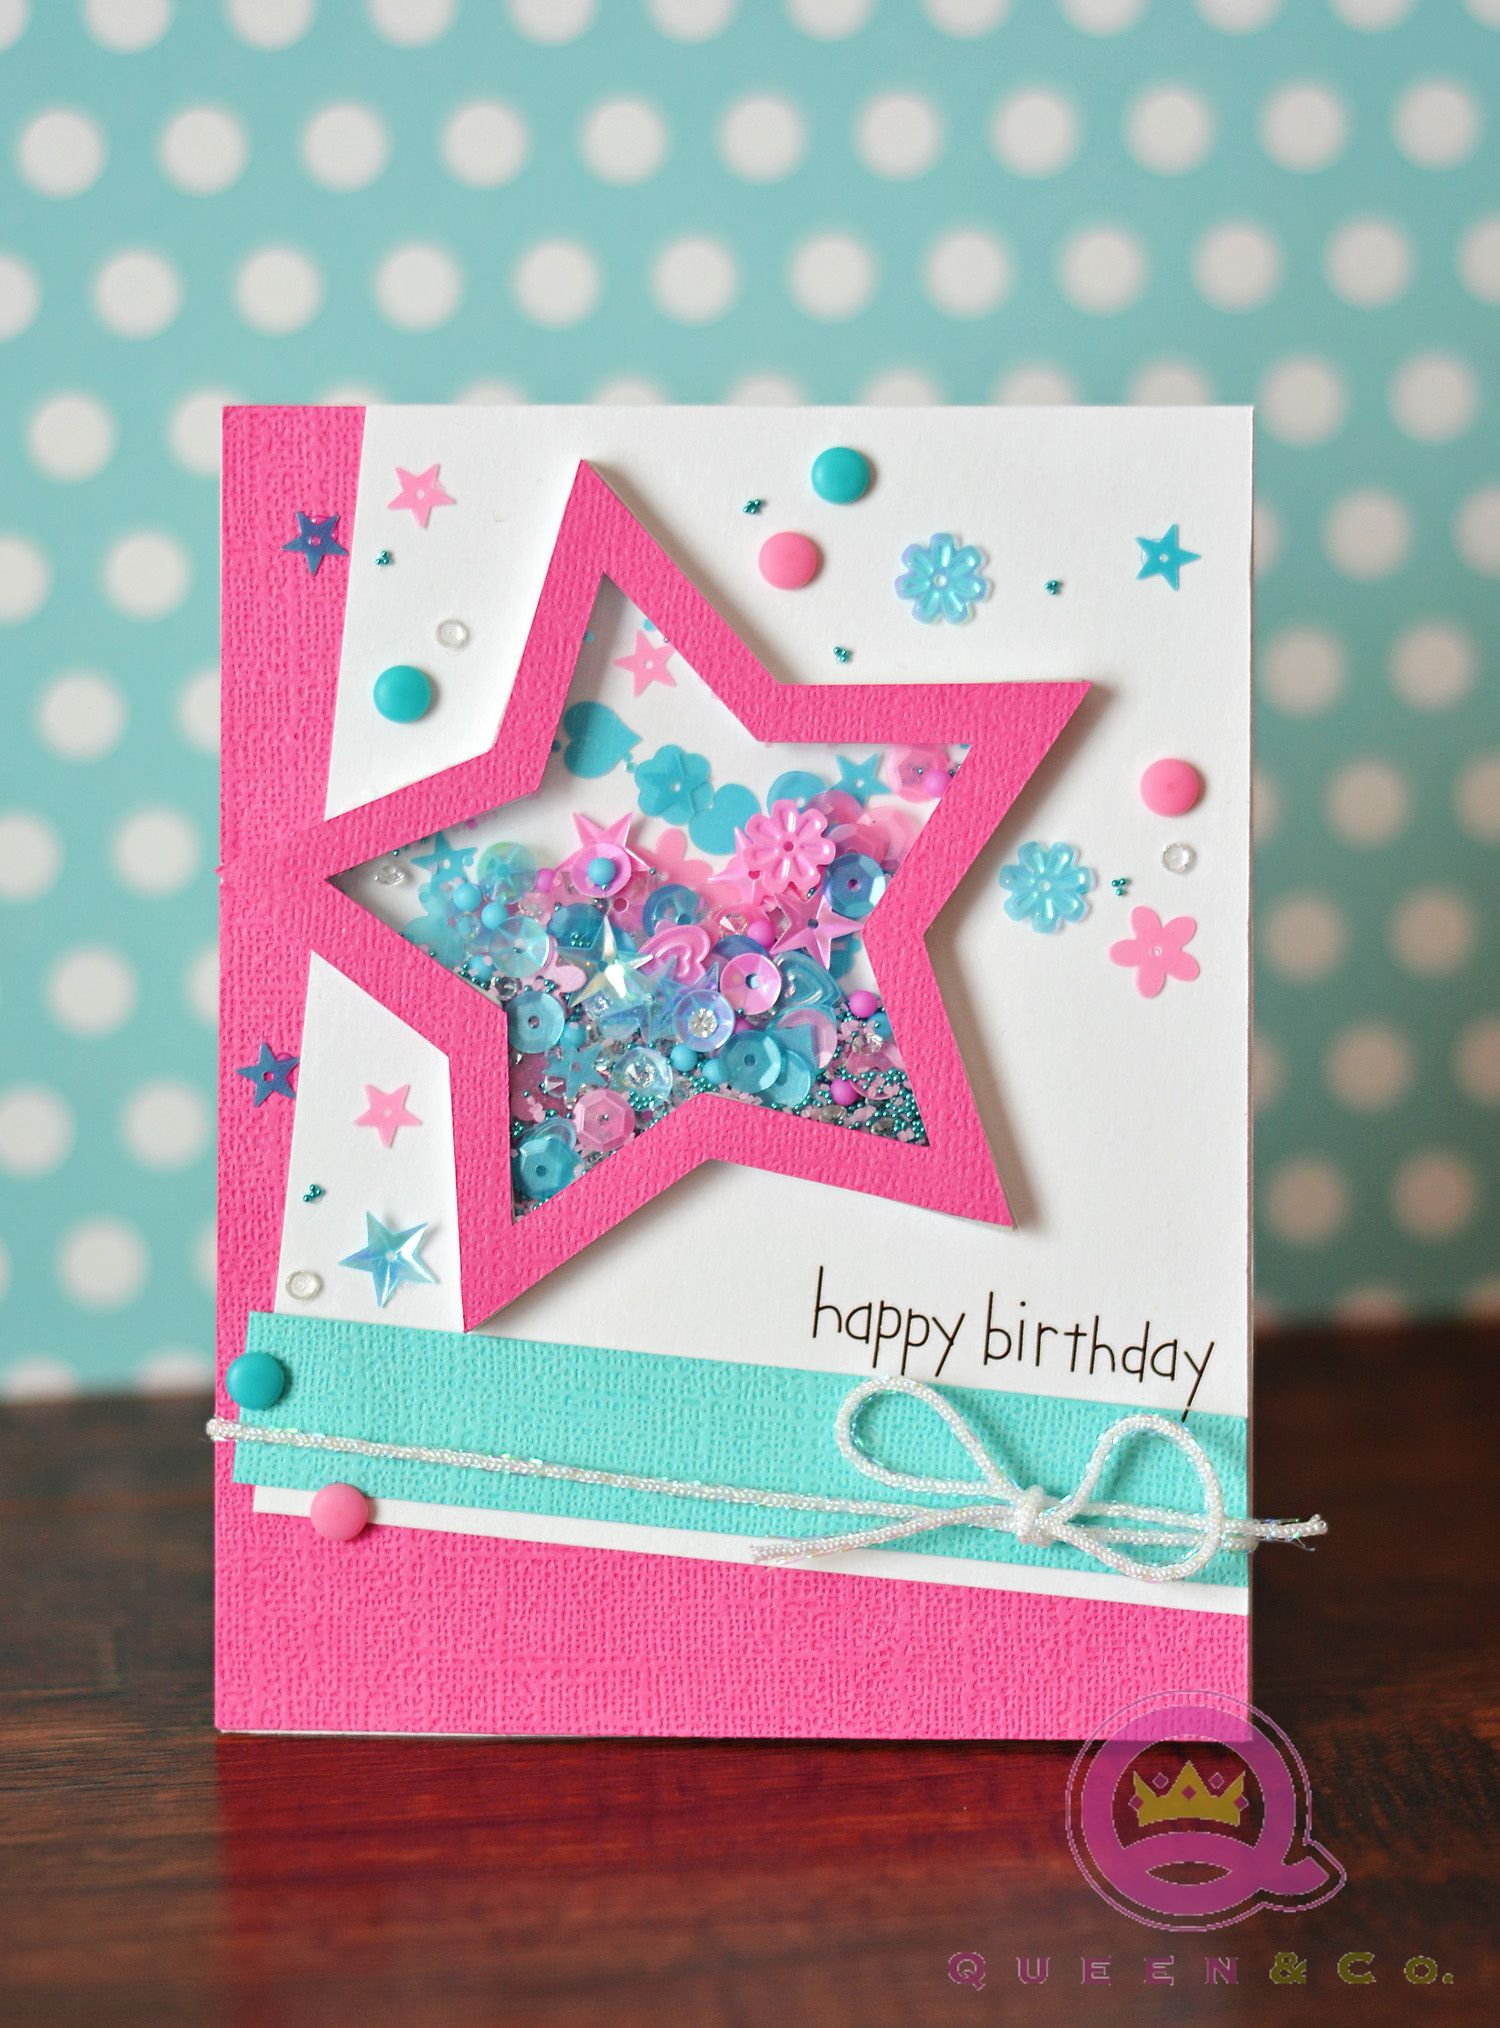 Happy Birthday Handmade Card Using Queen Co Pop Up Shaker Set Perfect For Creating Cards Masculine Get Well Soon And